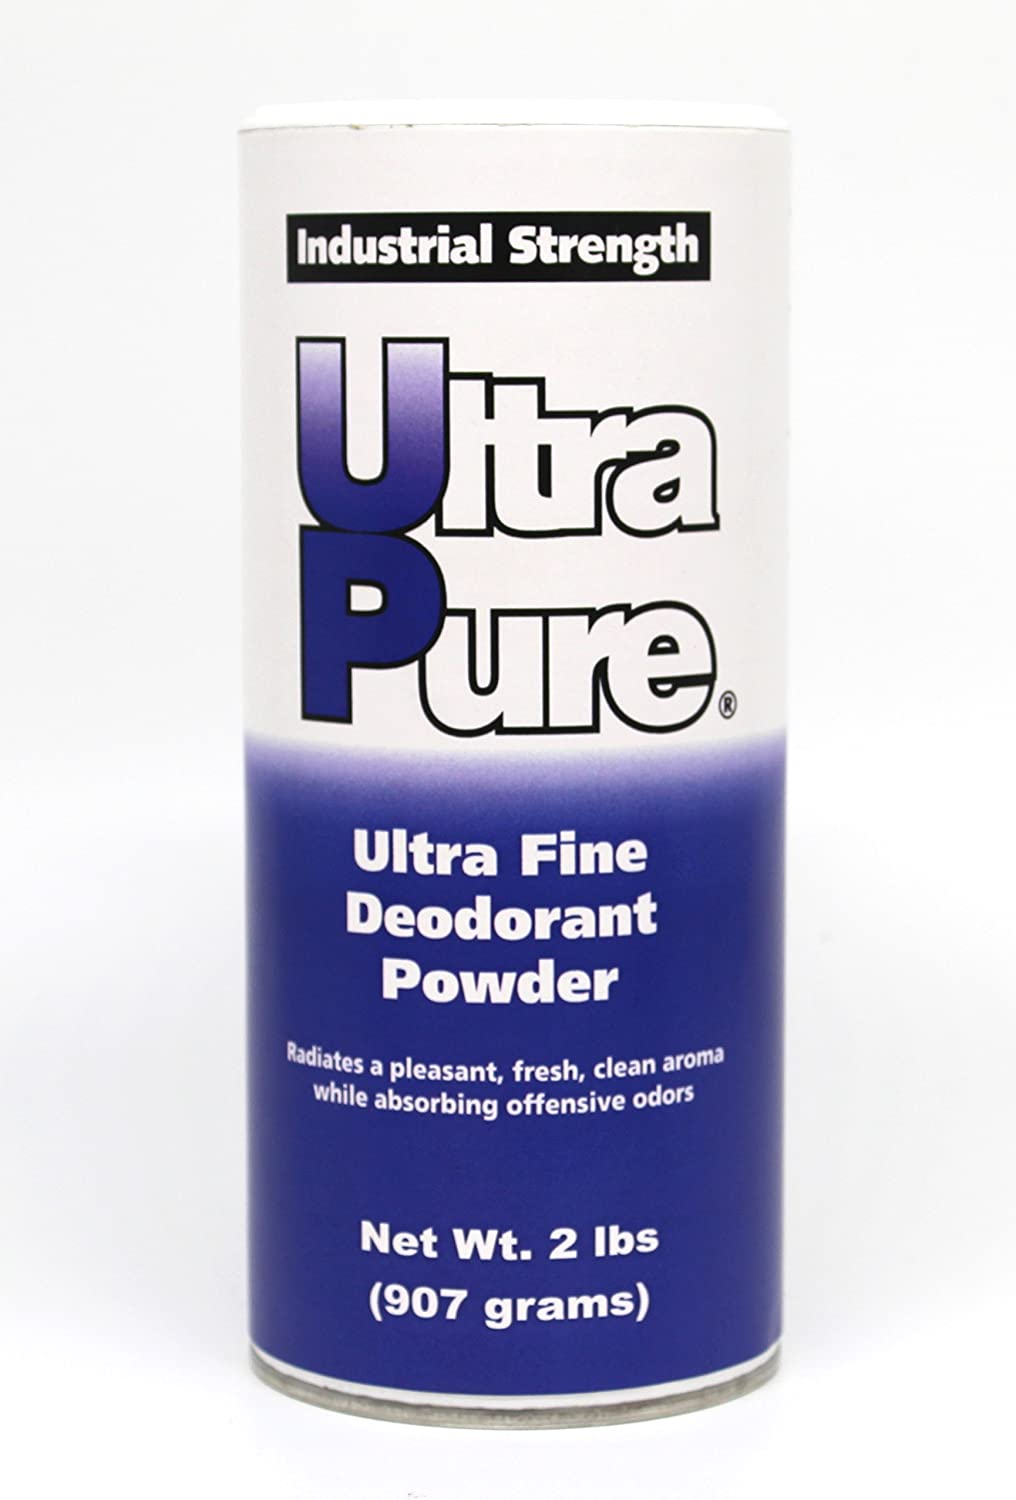 Ultra Pure - Industrial Strength Deodorant Carpet Lb 2 Powder Indianapolis Cheap mail order specialty store Mall De